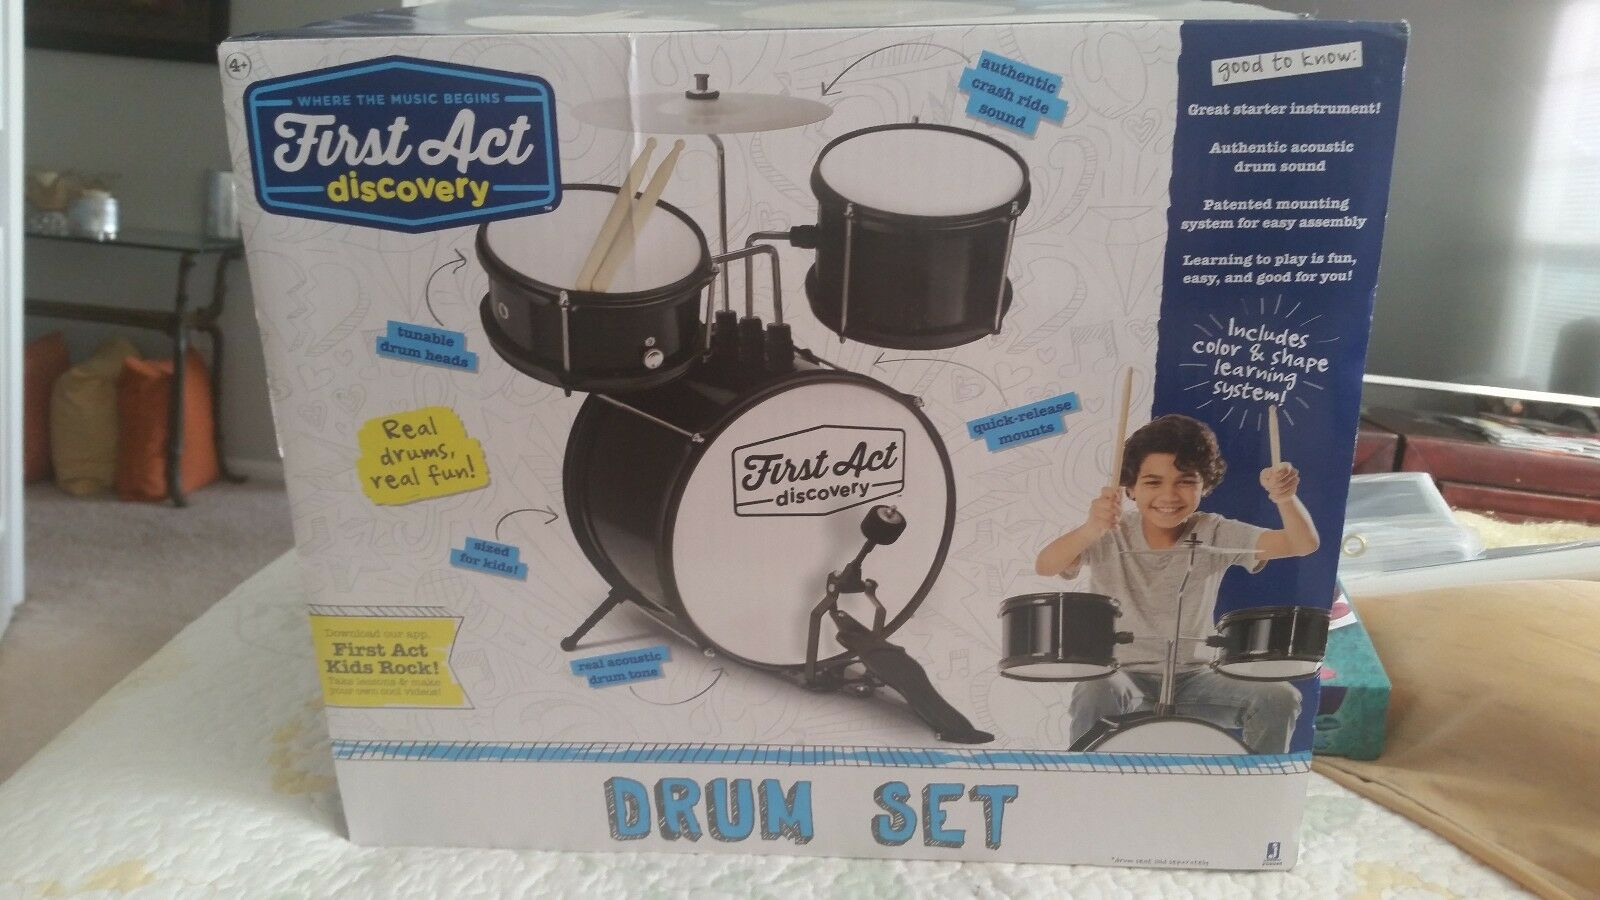 First act discovery drum set play